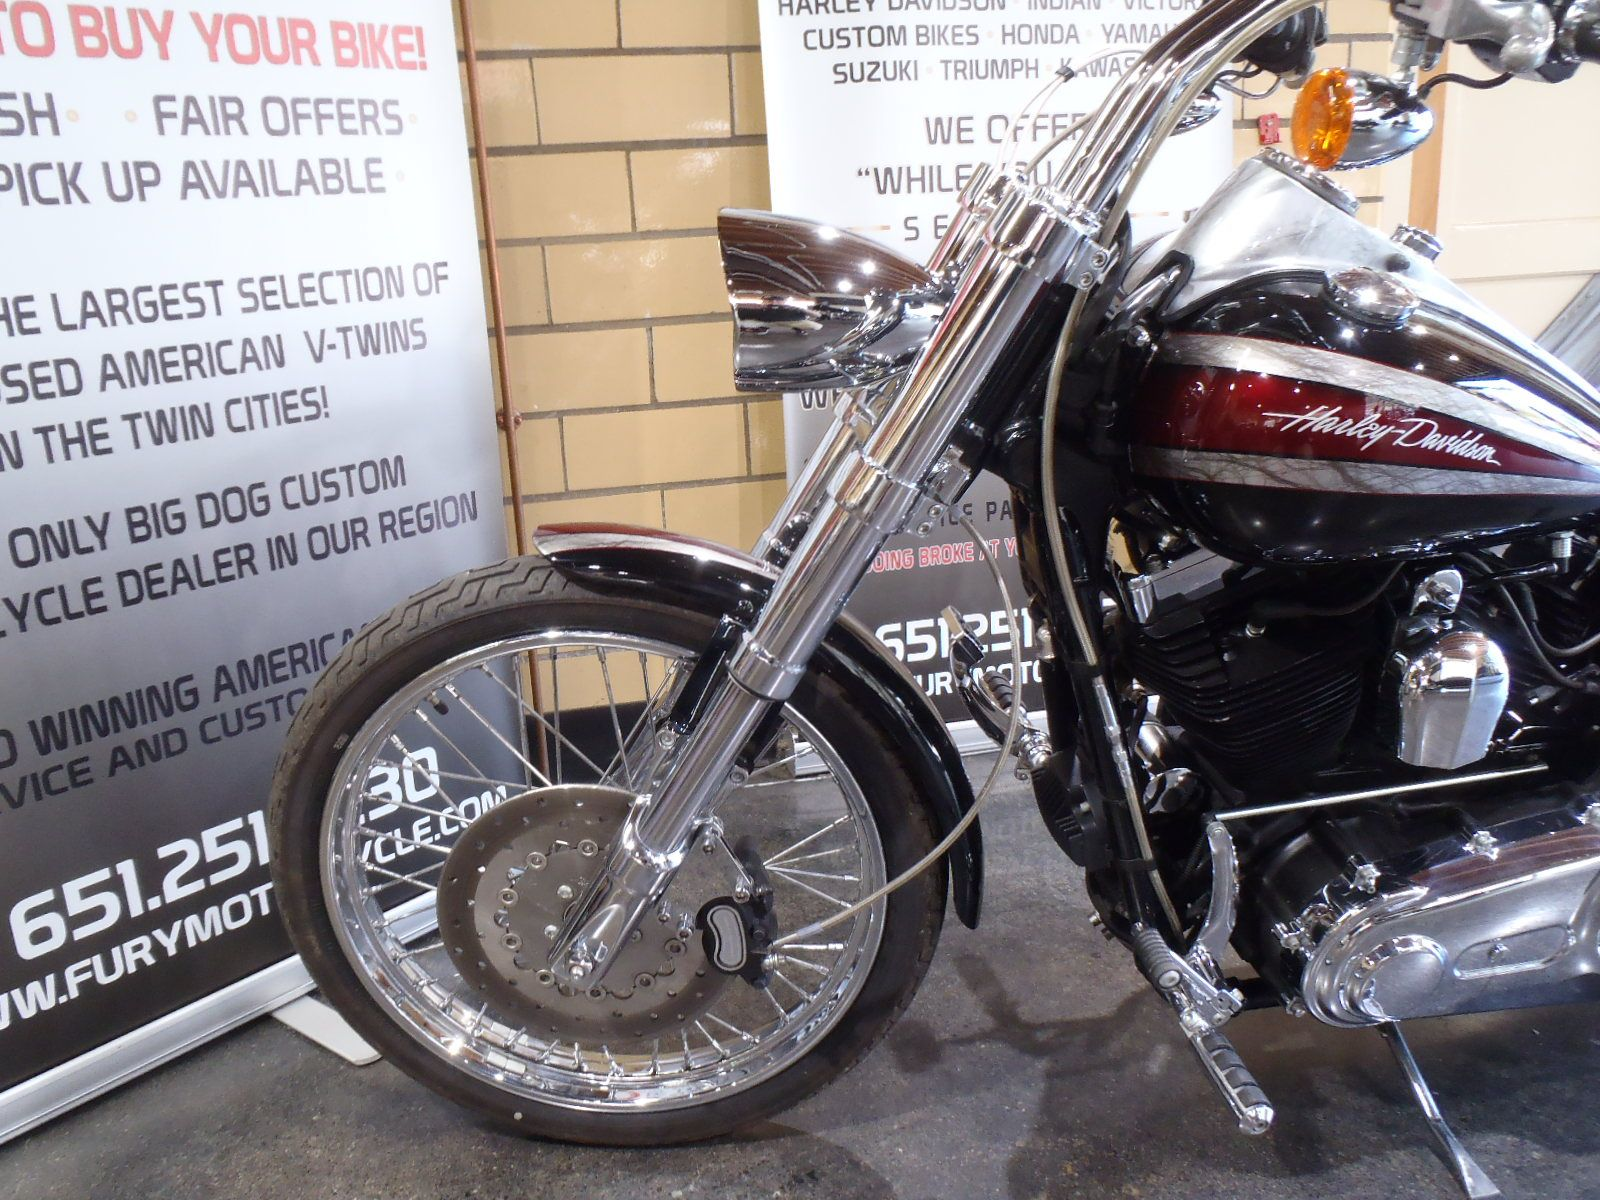 2009 Harley-Davidson Dyna Super Glide Custom in South Saint Paul, Minnesota - Photo 15